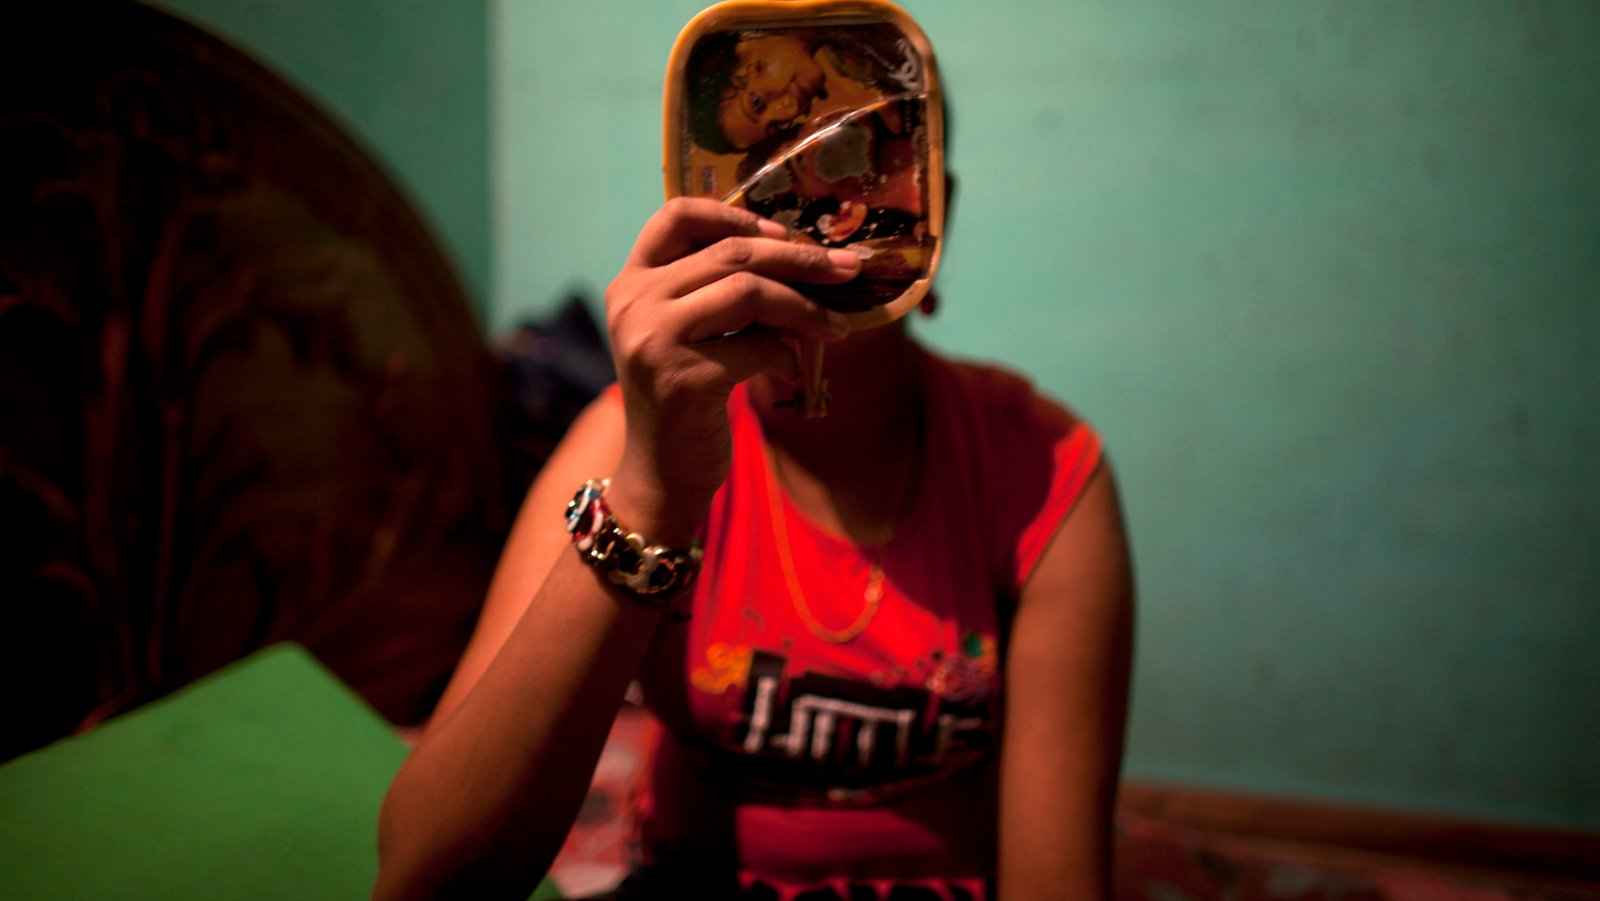 Twelve-year-old prostitute Mukti applies makeup before serving a customer inside her small room at a brothel in Faridpur, located in central Bangladesh February 22, 2012. REUTERS/Andrew Biraj